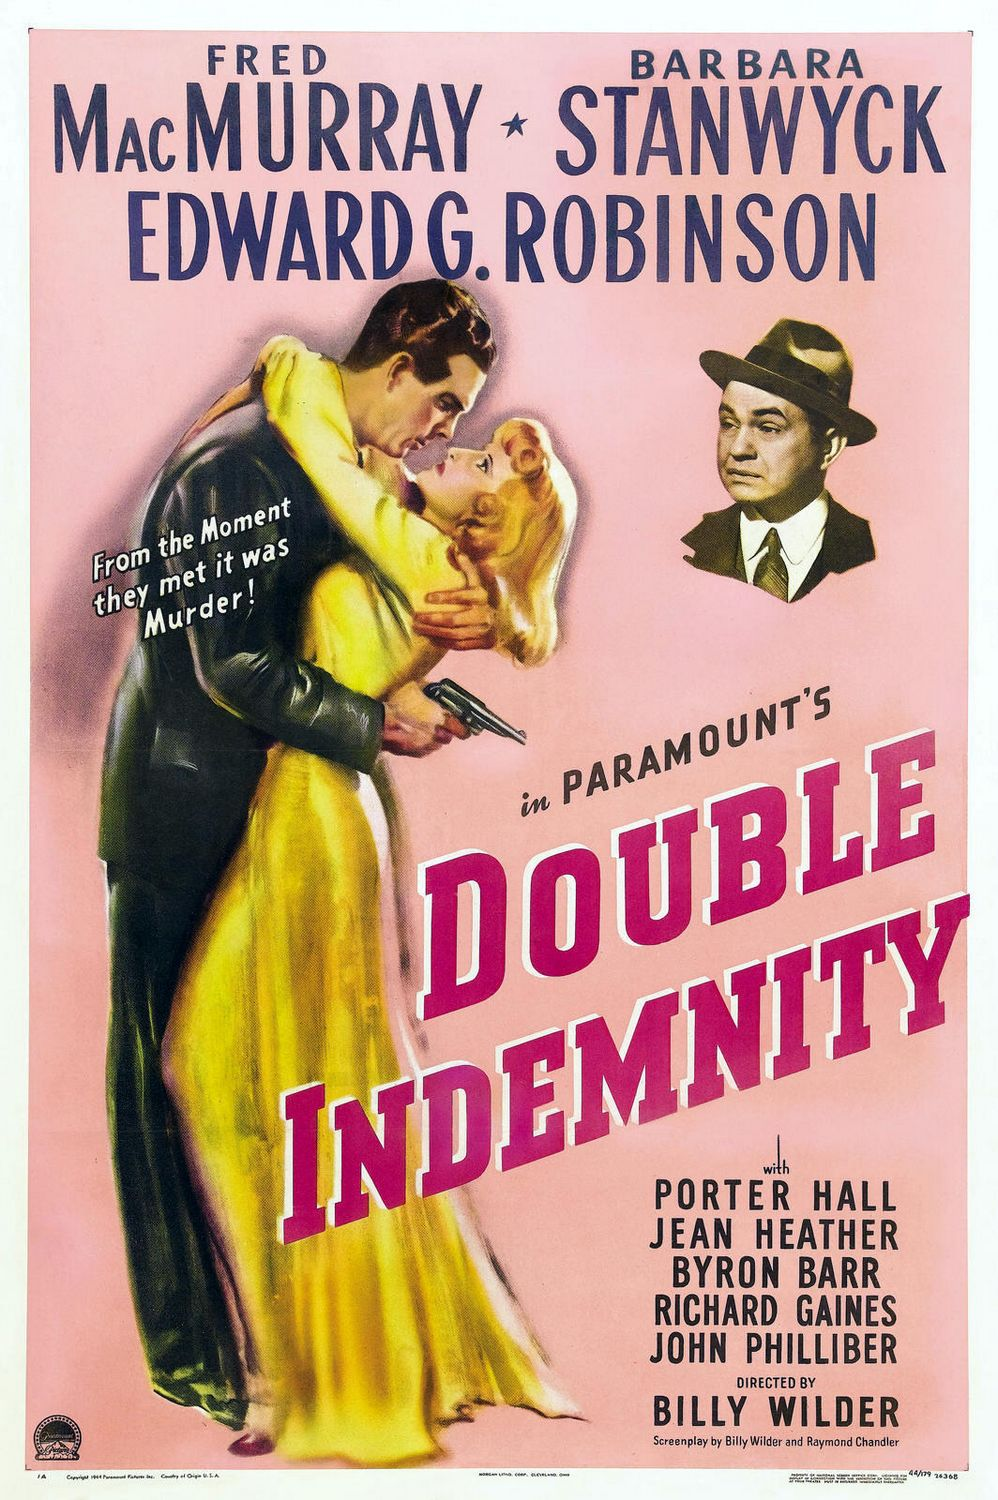 double indemnity film noir essay 91 121 113 106 double indemnity film noir essay